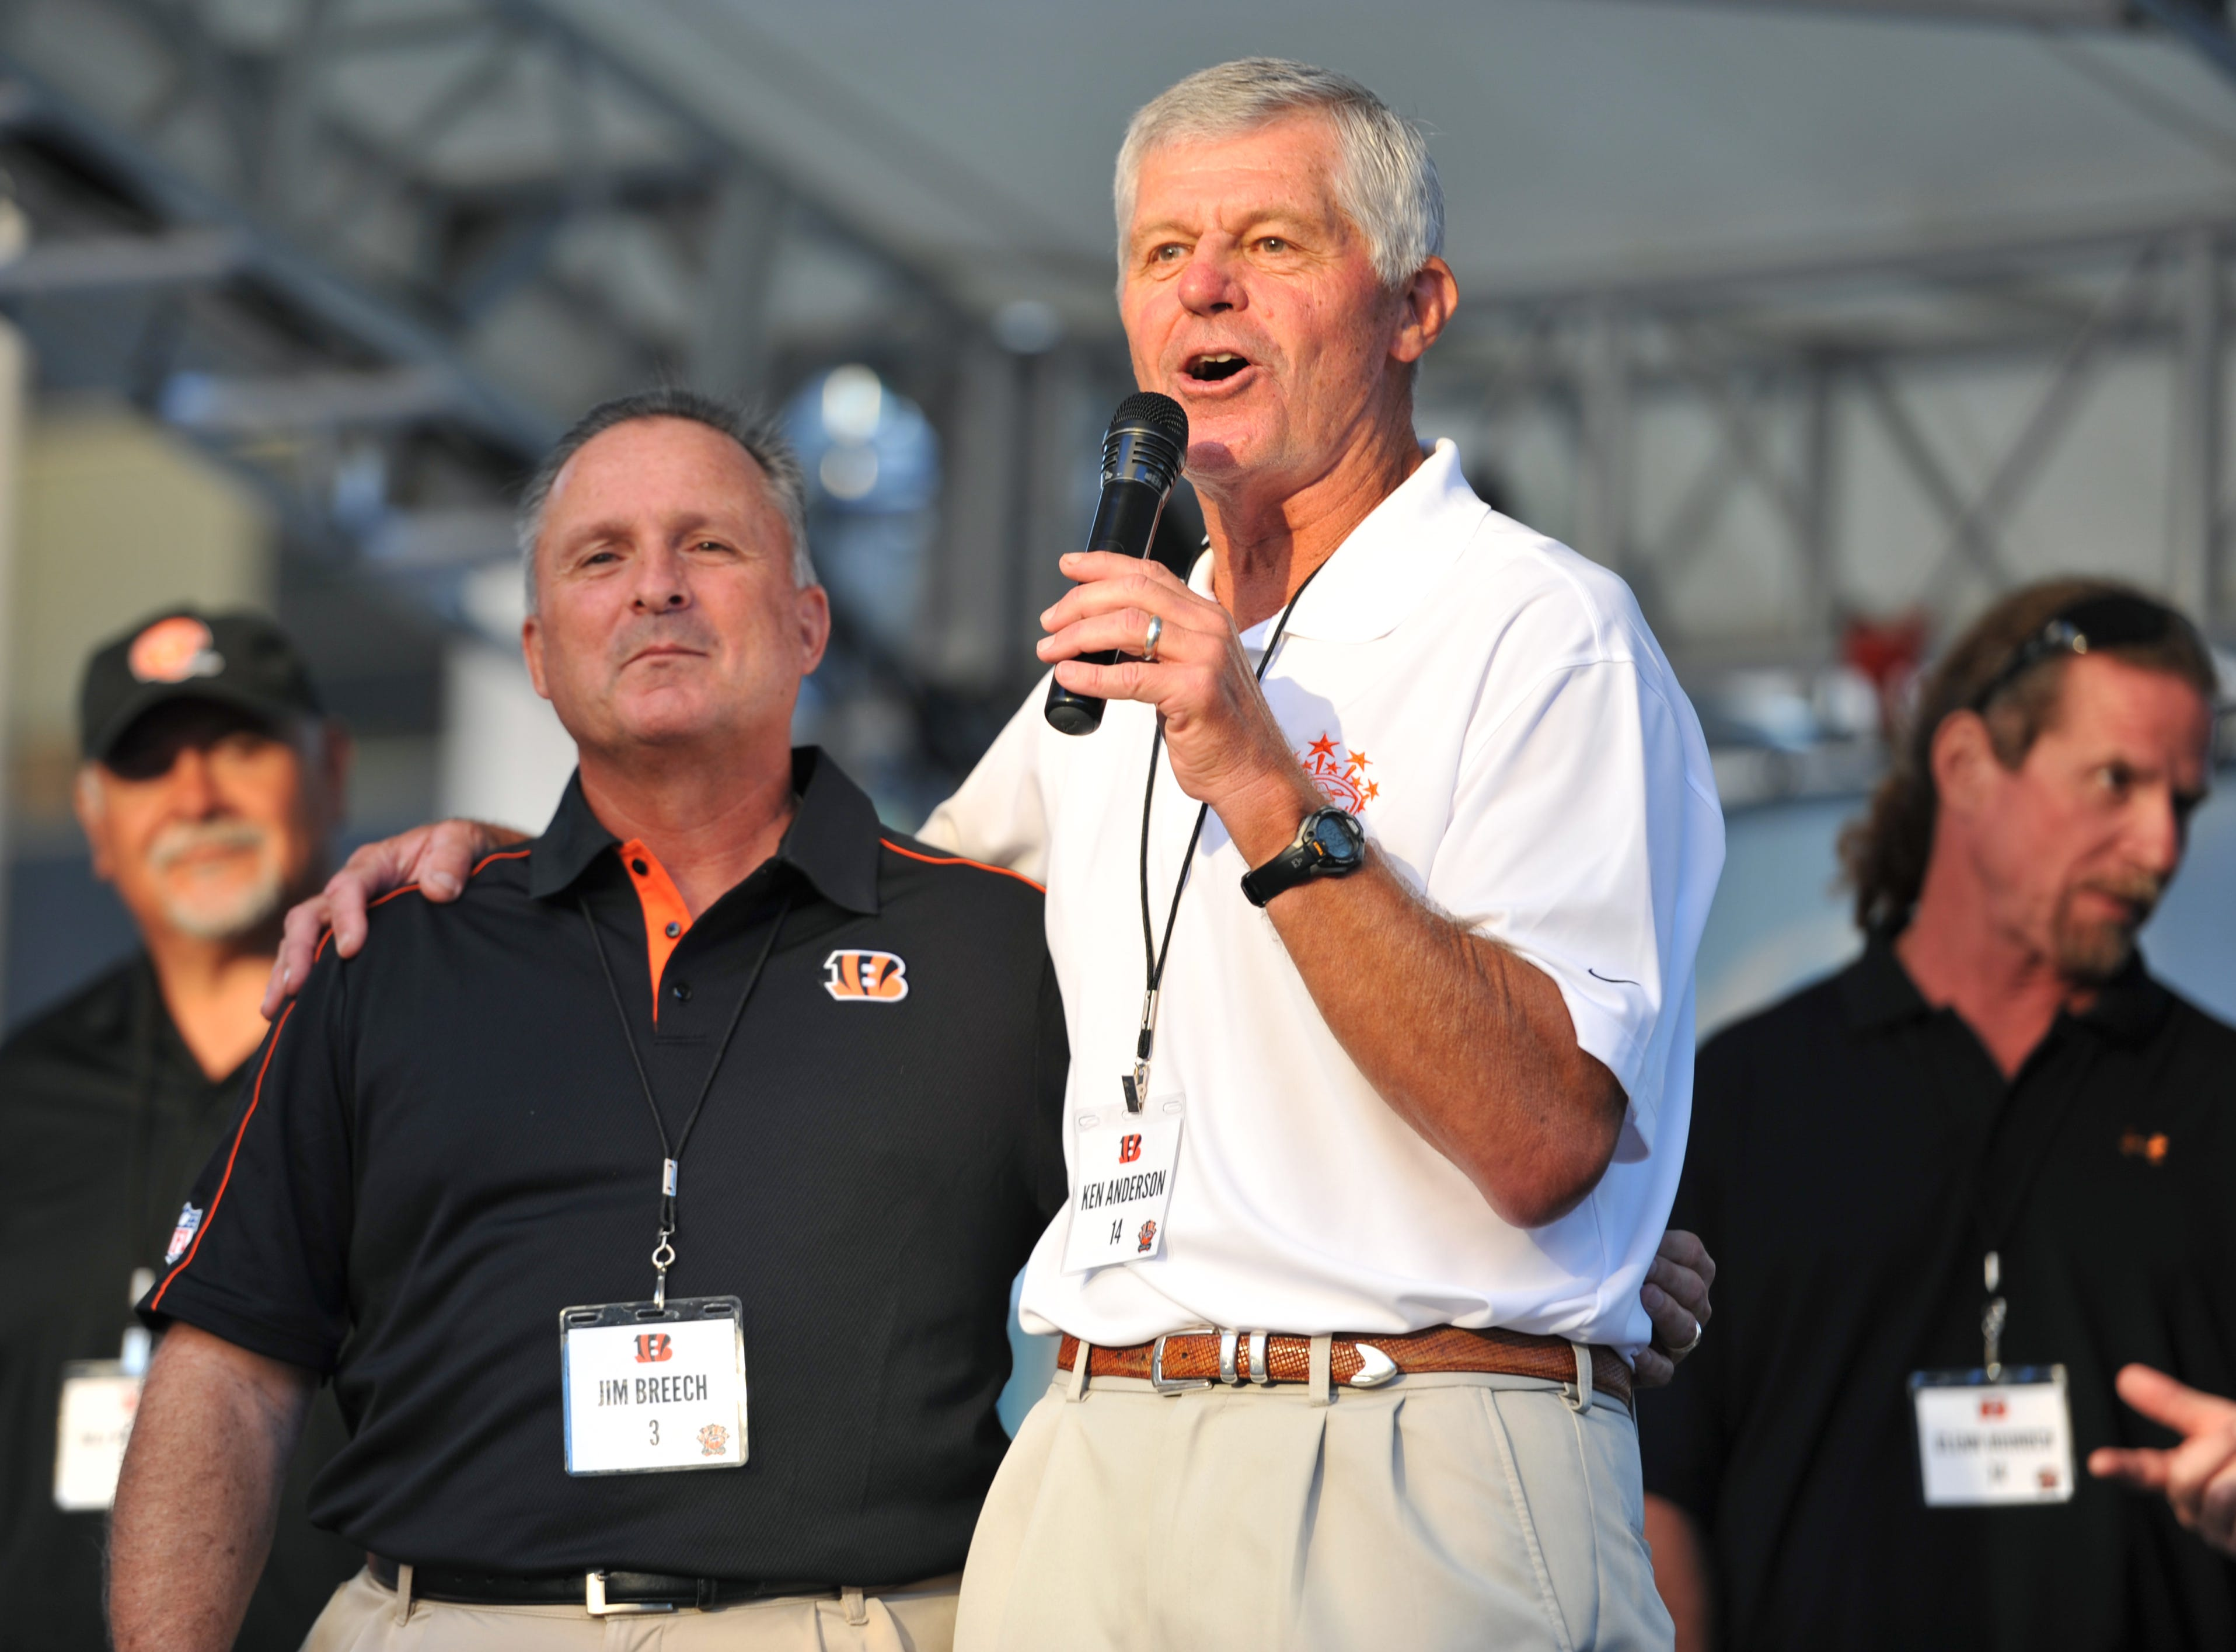 Ken Anderson, right, and Jim Breech, left, thank everyone for coming out to Fountain Square during the Ken Anderson Tailgate to benefit IMPACT Autism on Sept. 10, 2012.